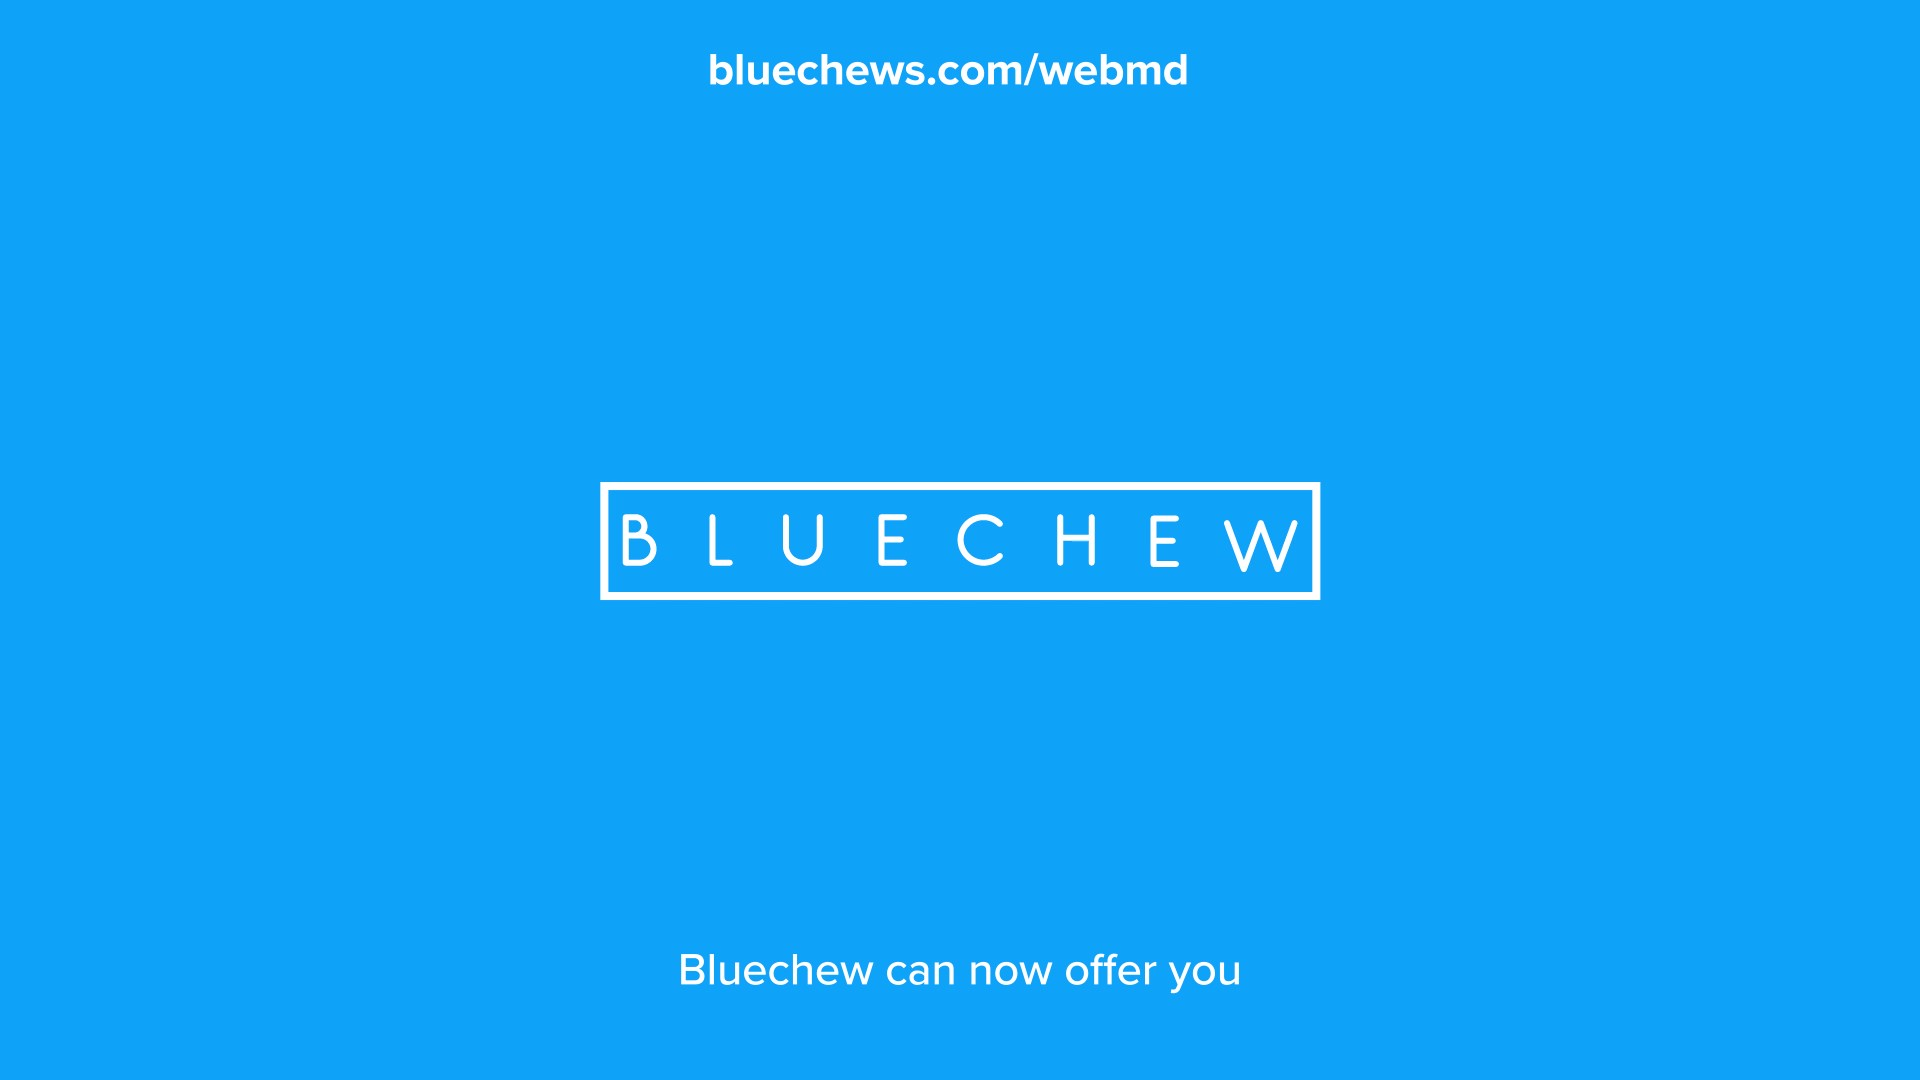 Bluechew Viagra & Cialis Explanation